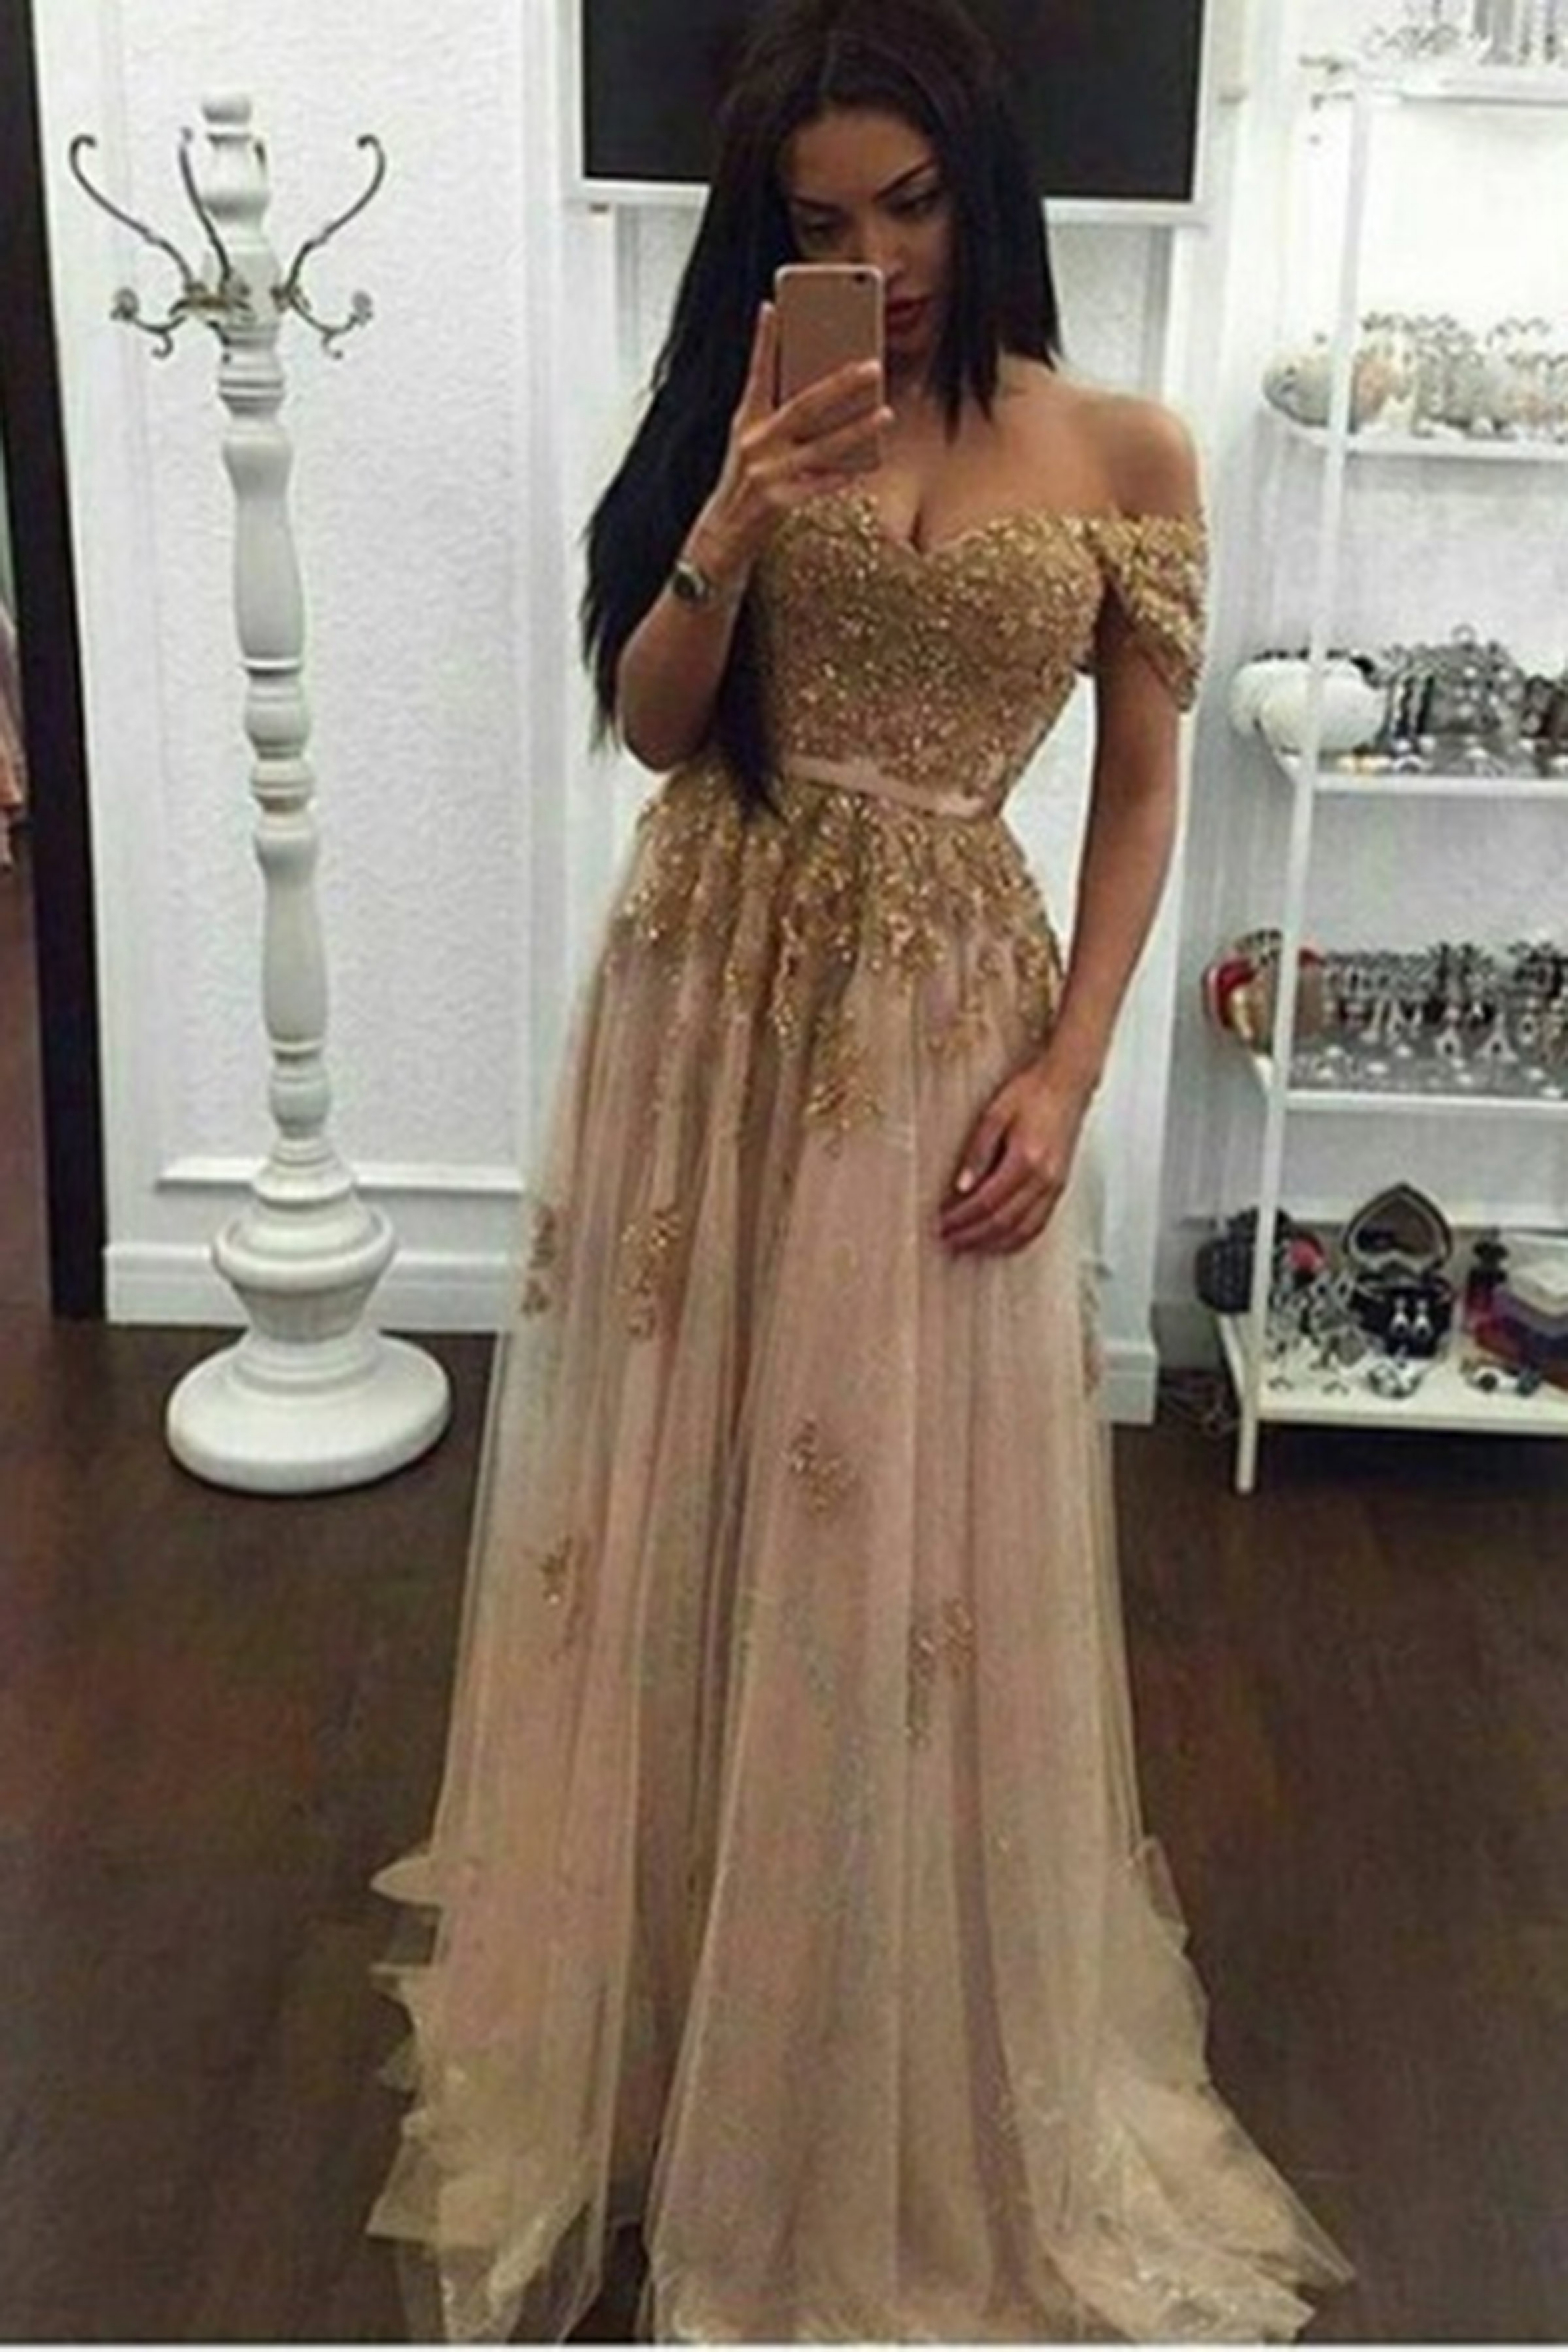 c3804ec8fee Light gold tulle sequins qpplique off-shoulder floor-length long ...